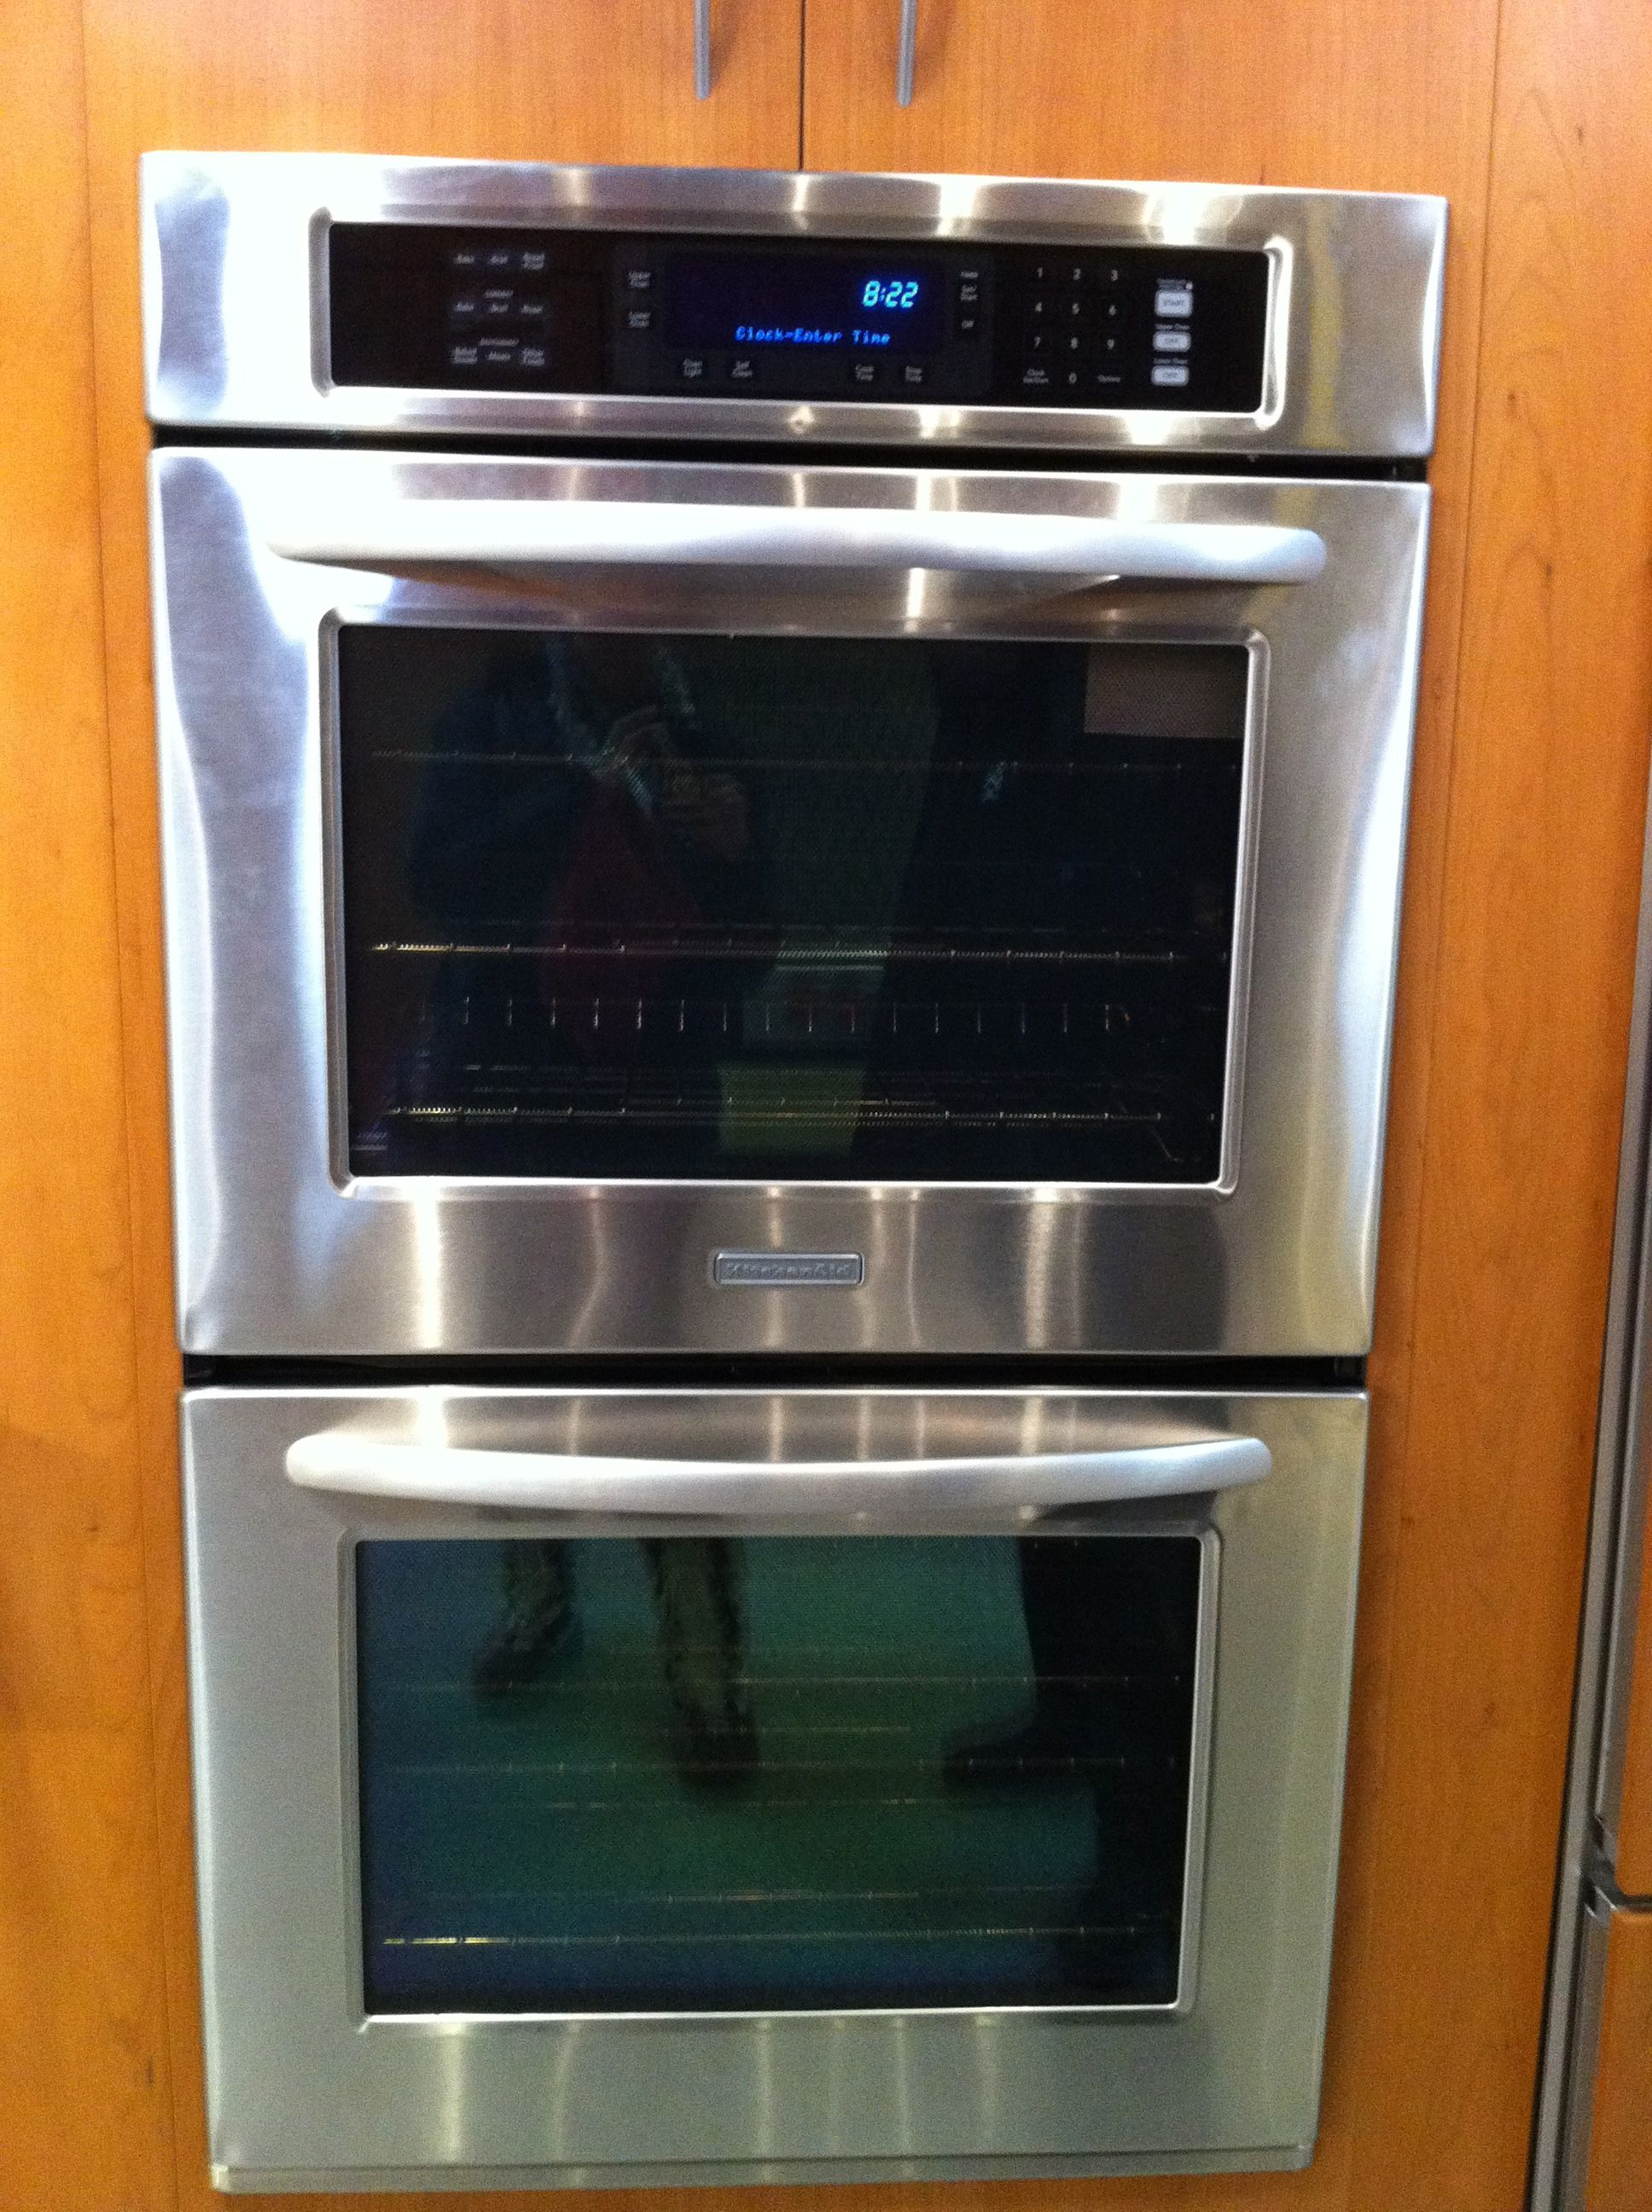 Awesome Kitchenaid Double Wall Oven *drool*